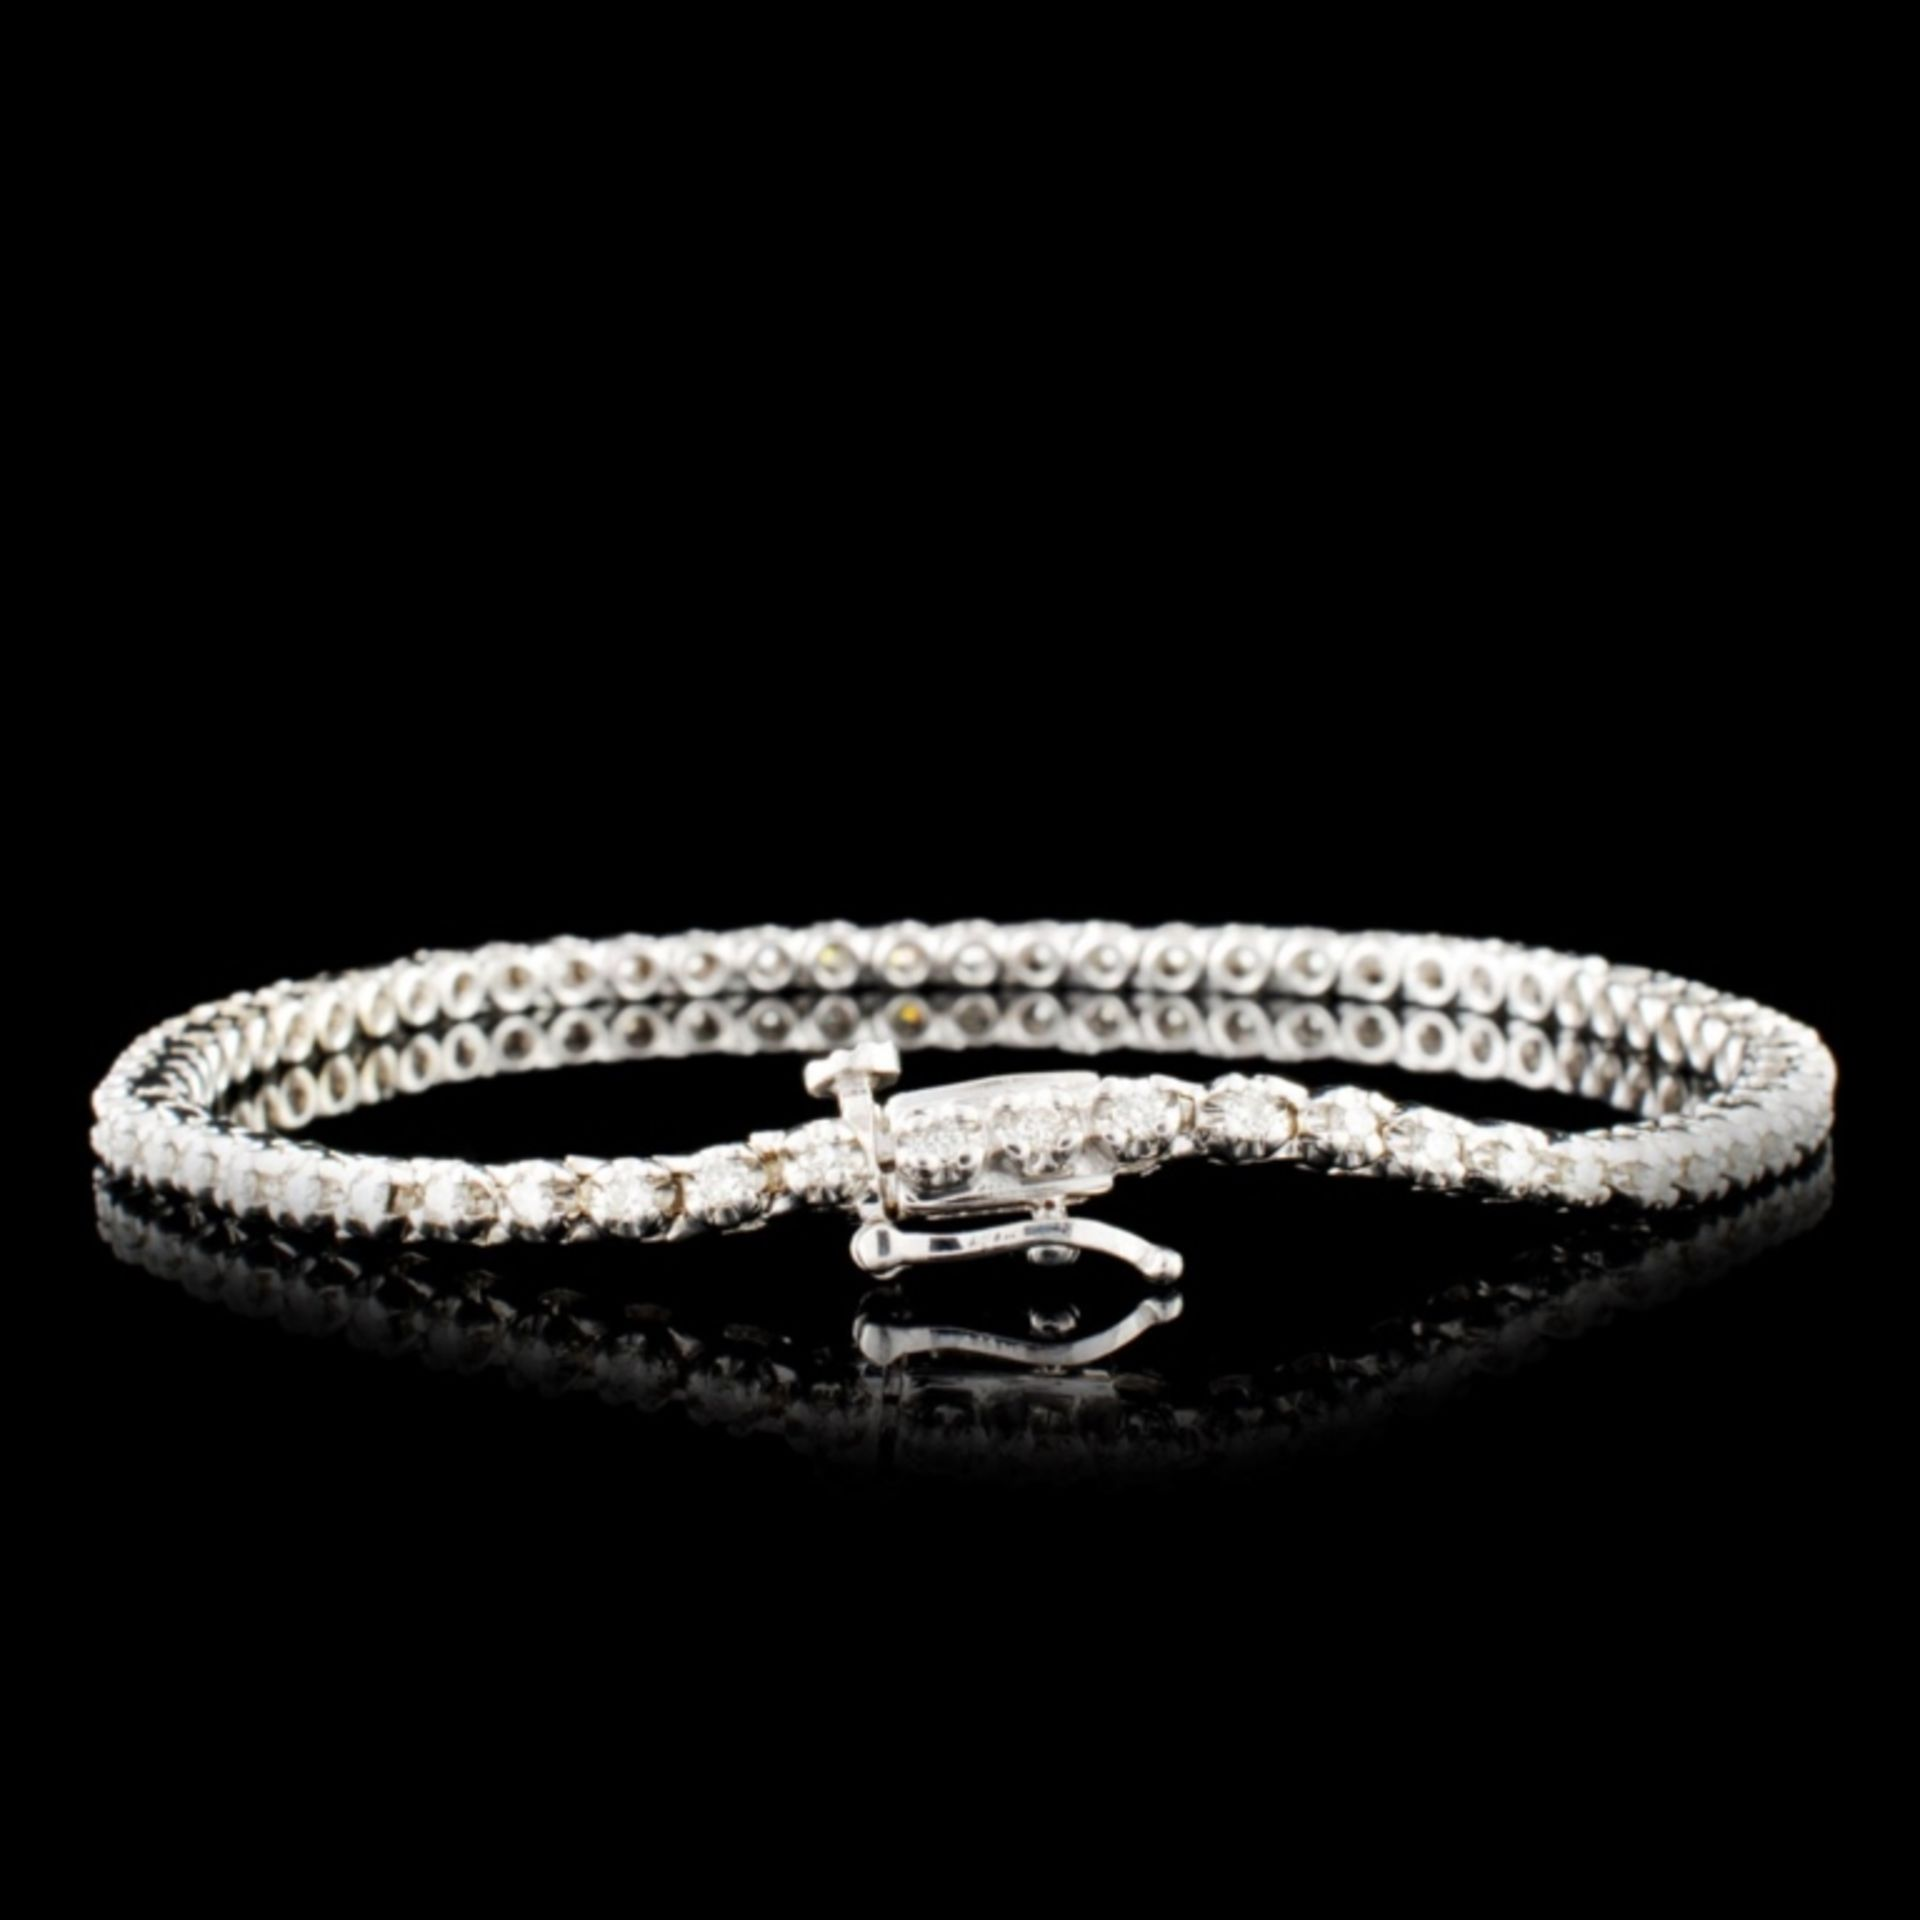 14K Gold 0.44ctw Diamond Bracelet - Image 2 of 4